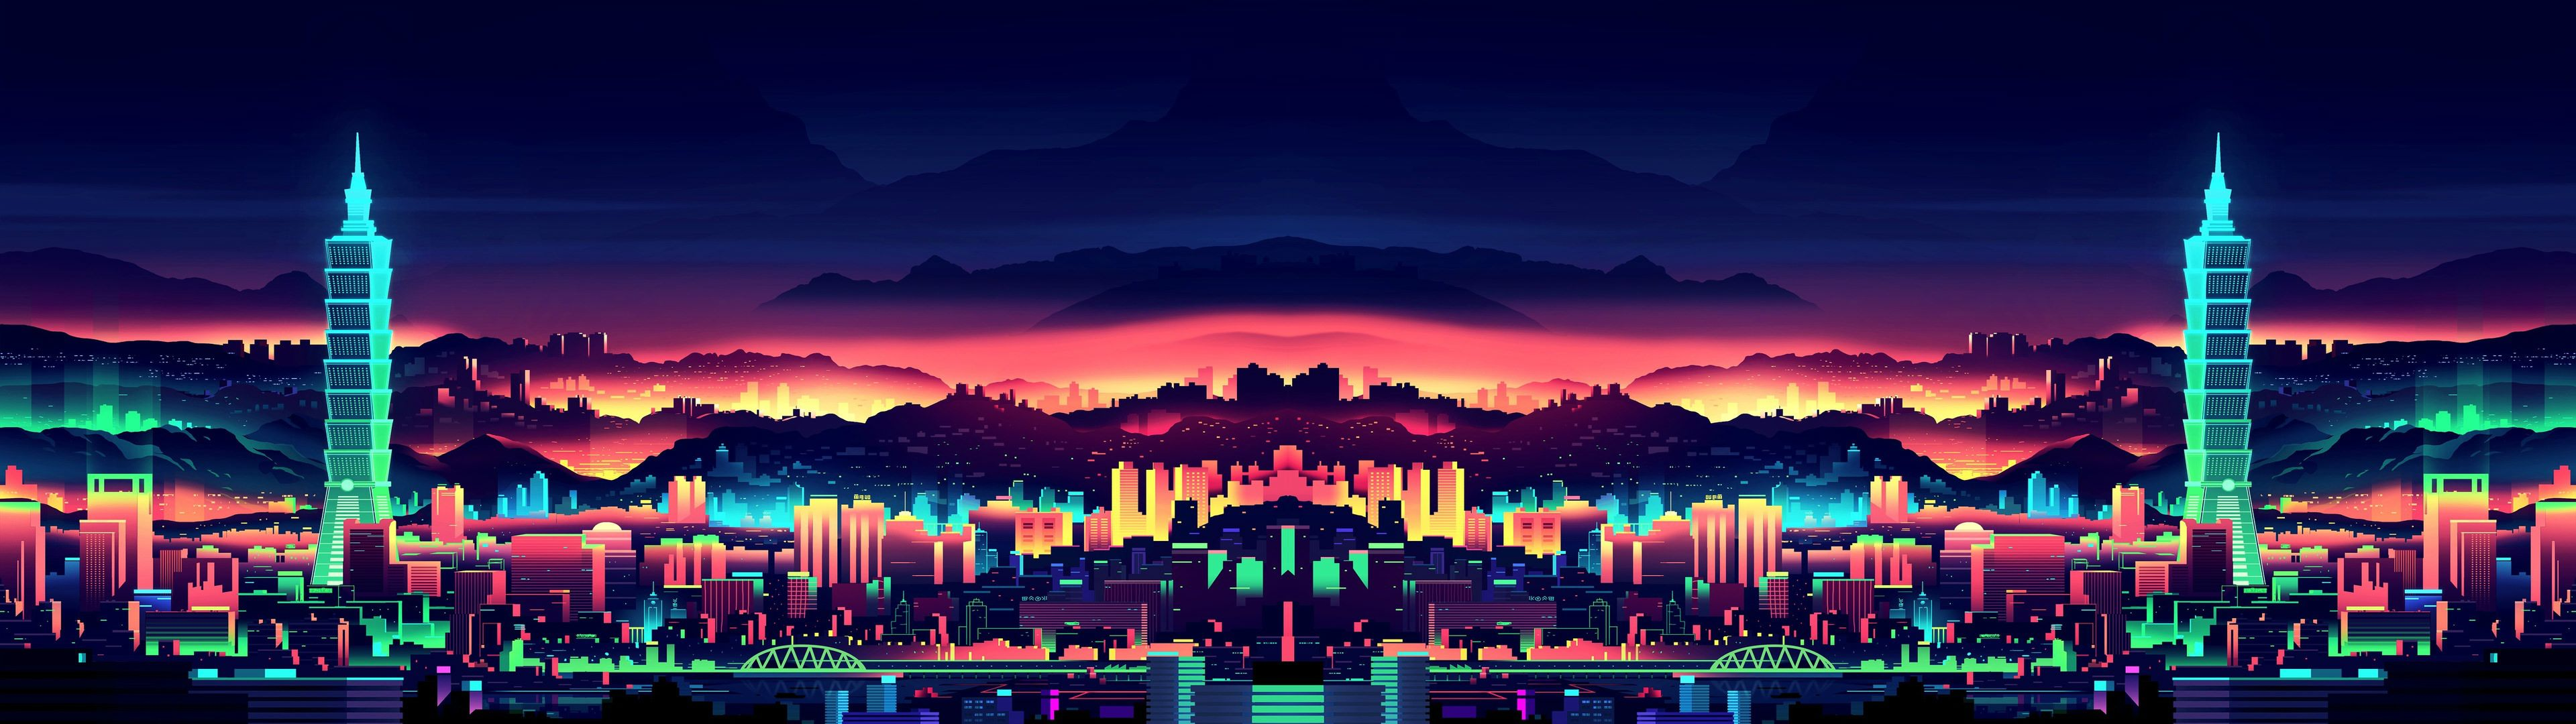 Neon city 3840x1080 wallpaper (1920x1080 versions included) | Reddit HD Wallpapers | Pinterest